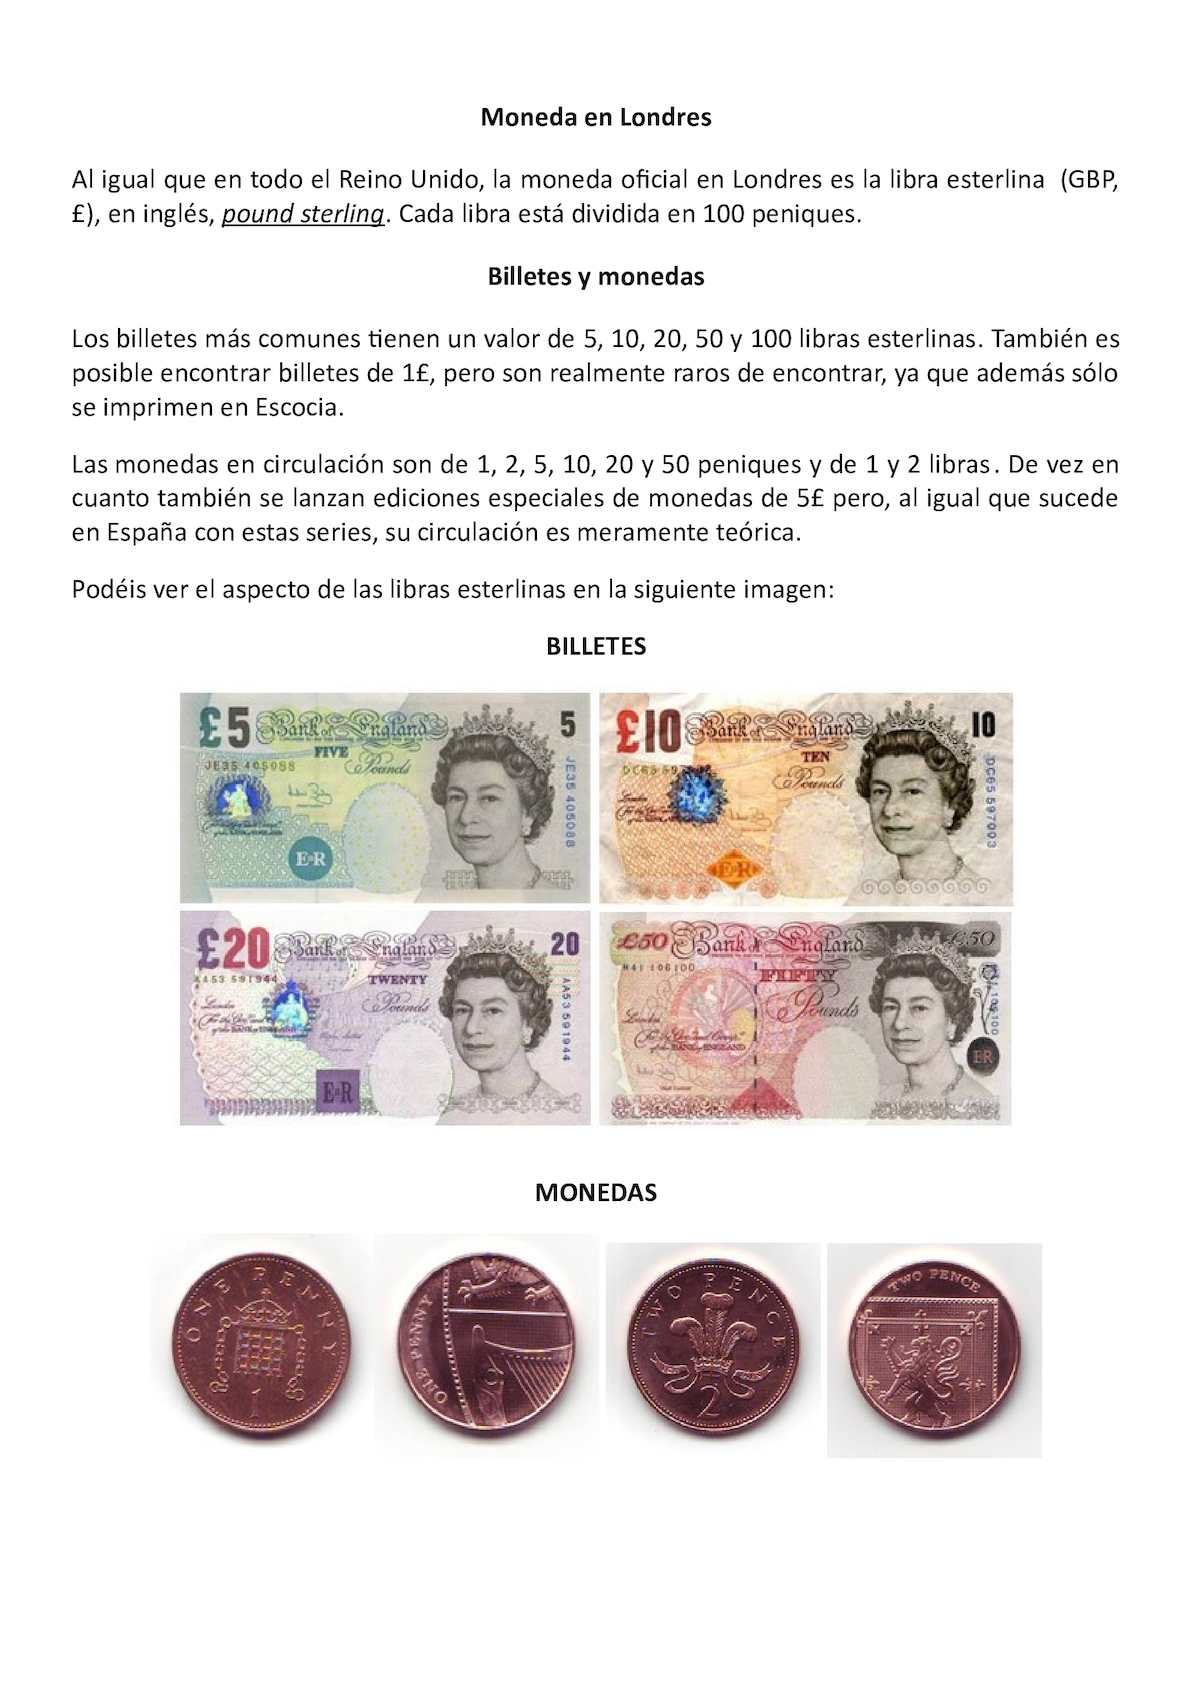 Libras Esterlinas Monedas Calaméo Monedas Inglaterra